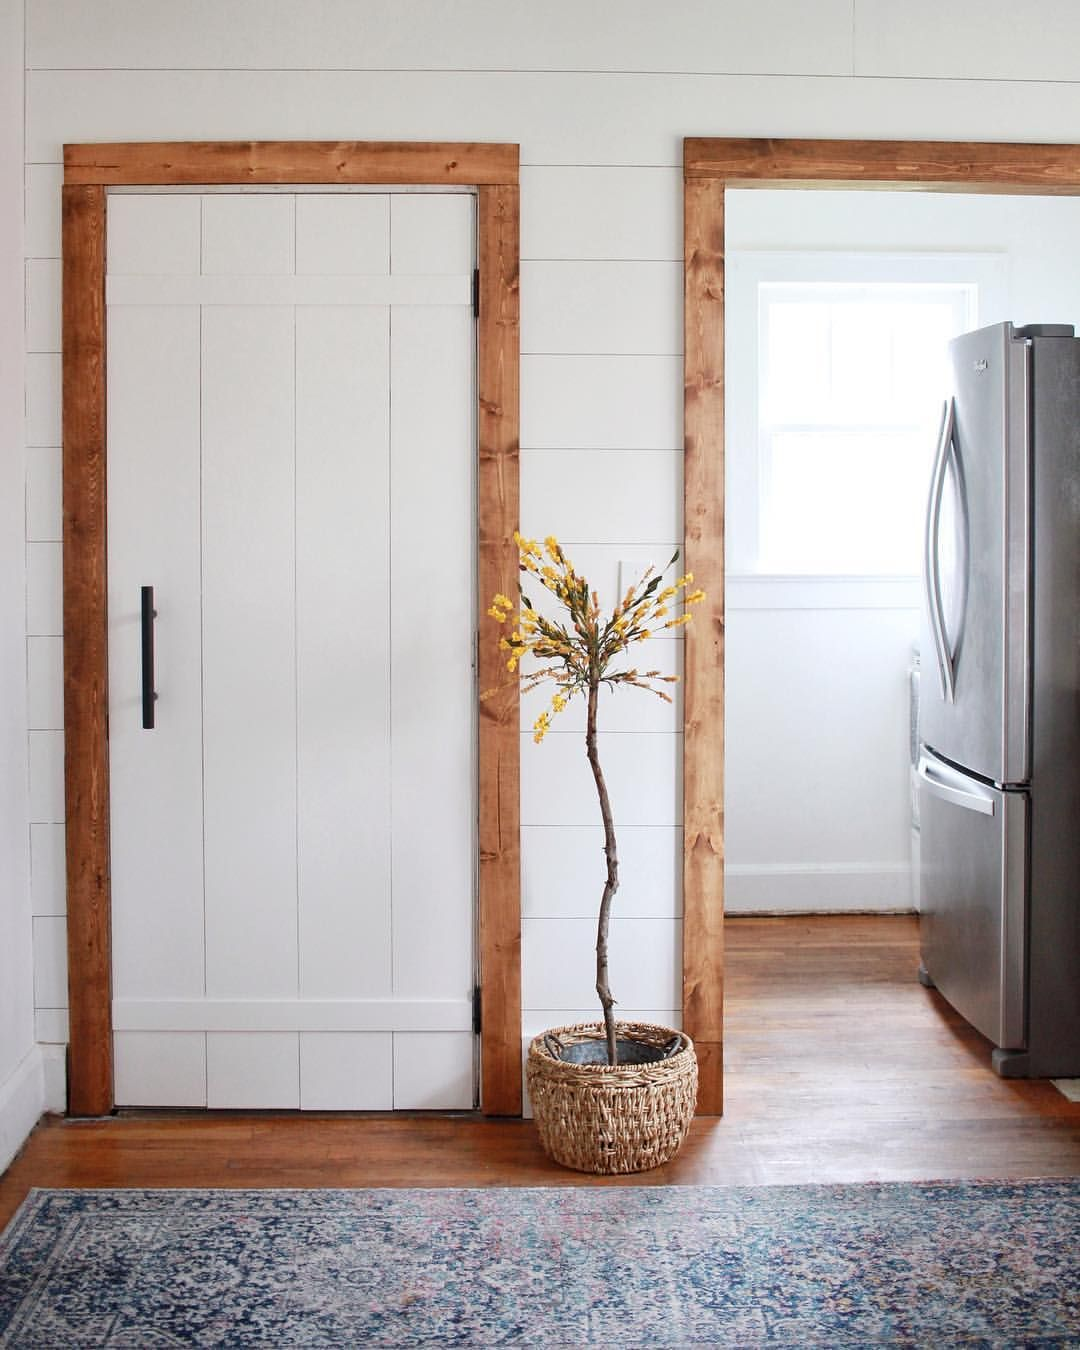 Shiplap Wall with Warm Wood Door Frames  Wood door frame, Ship